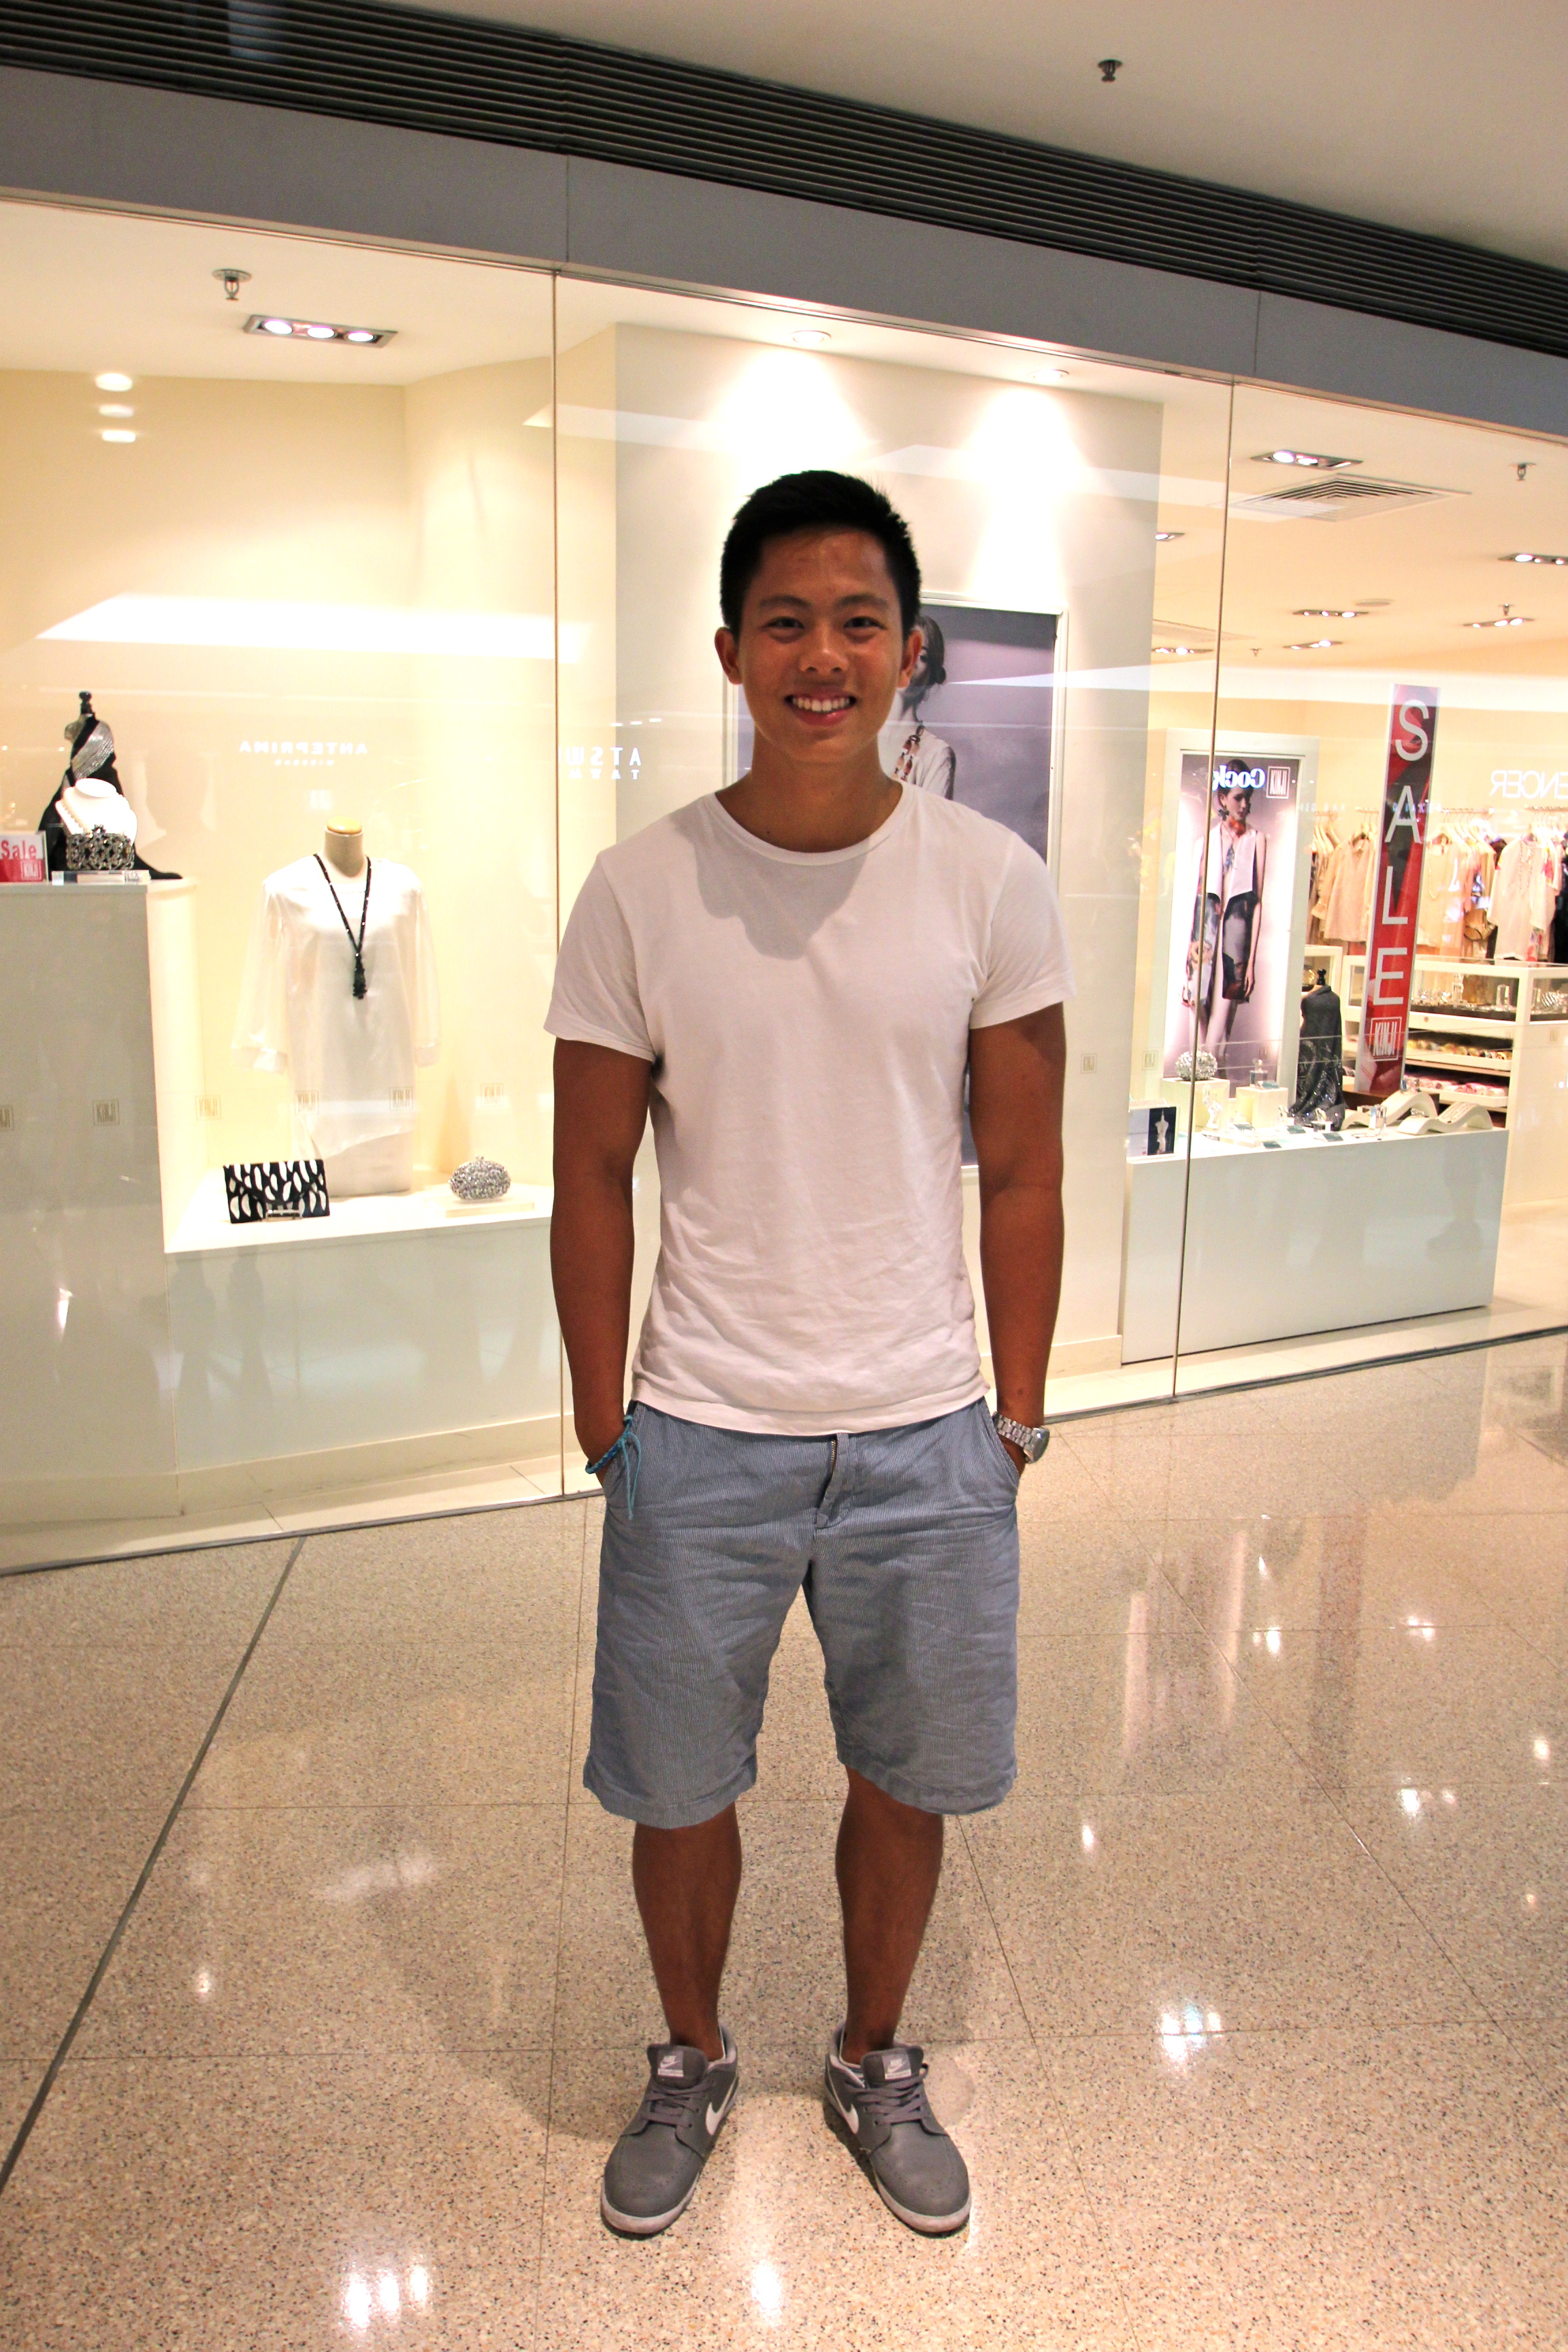 """OOTD Series: The """"Simple White Tee Outfit"""" Trend"""